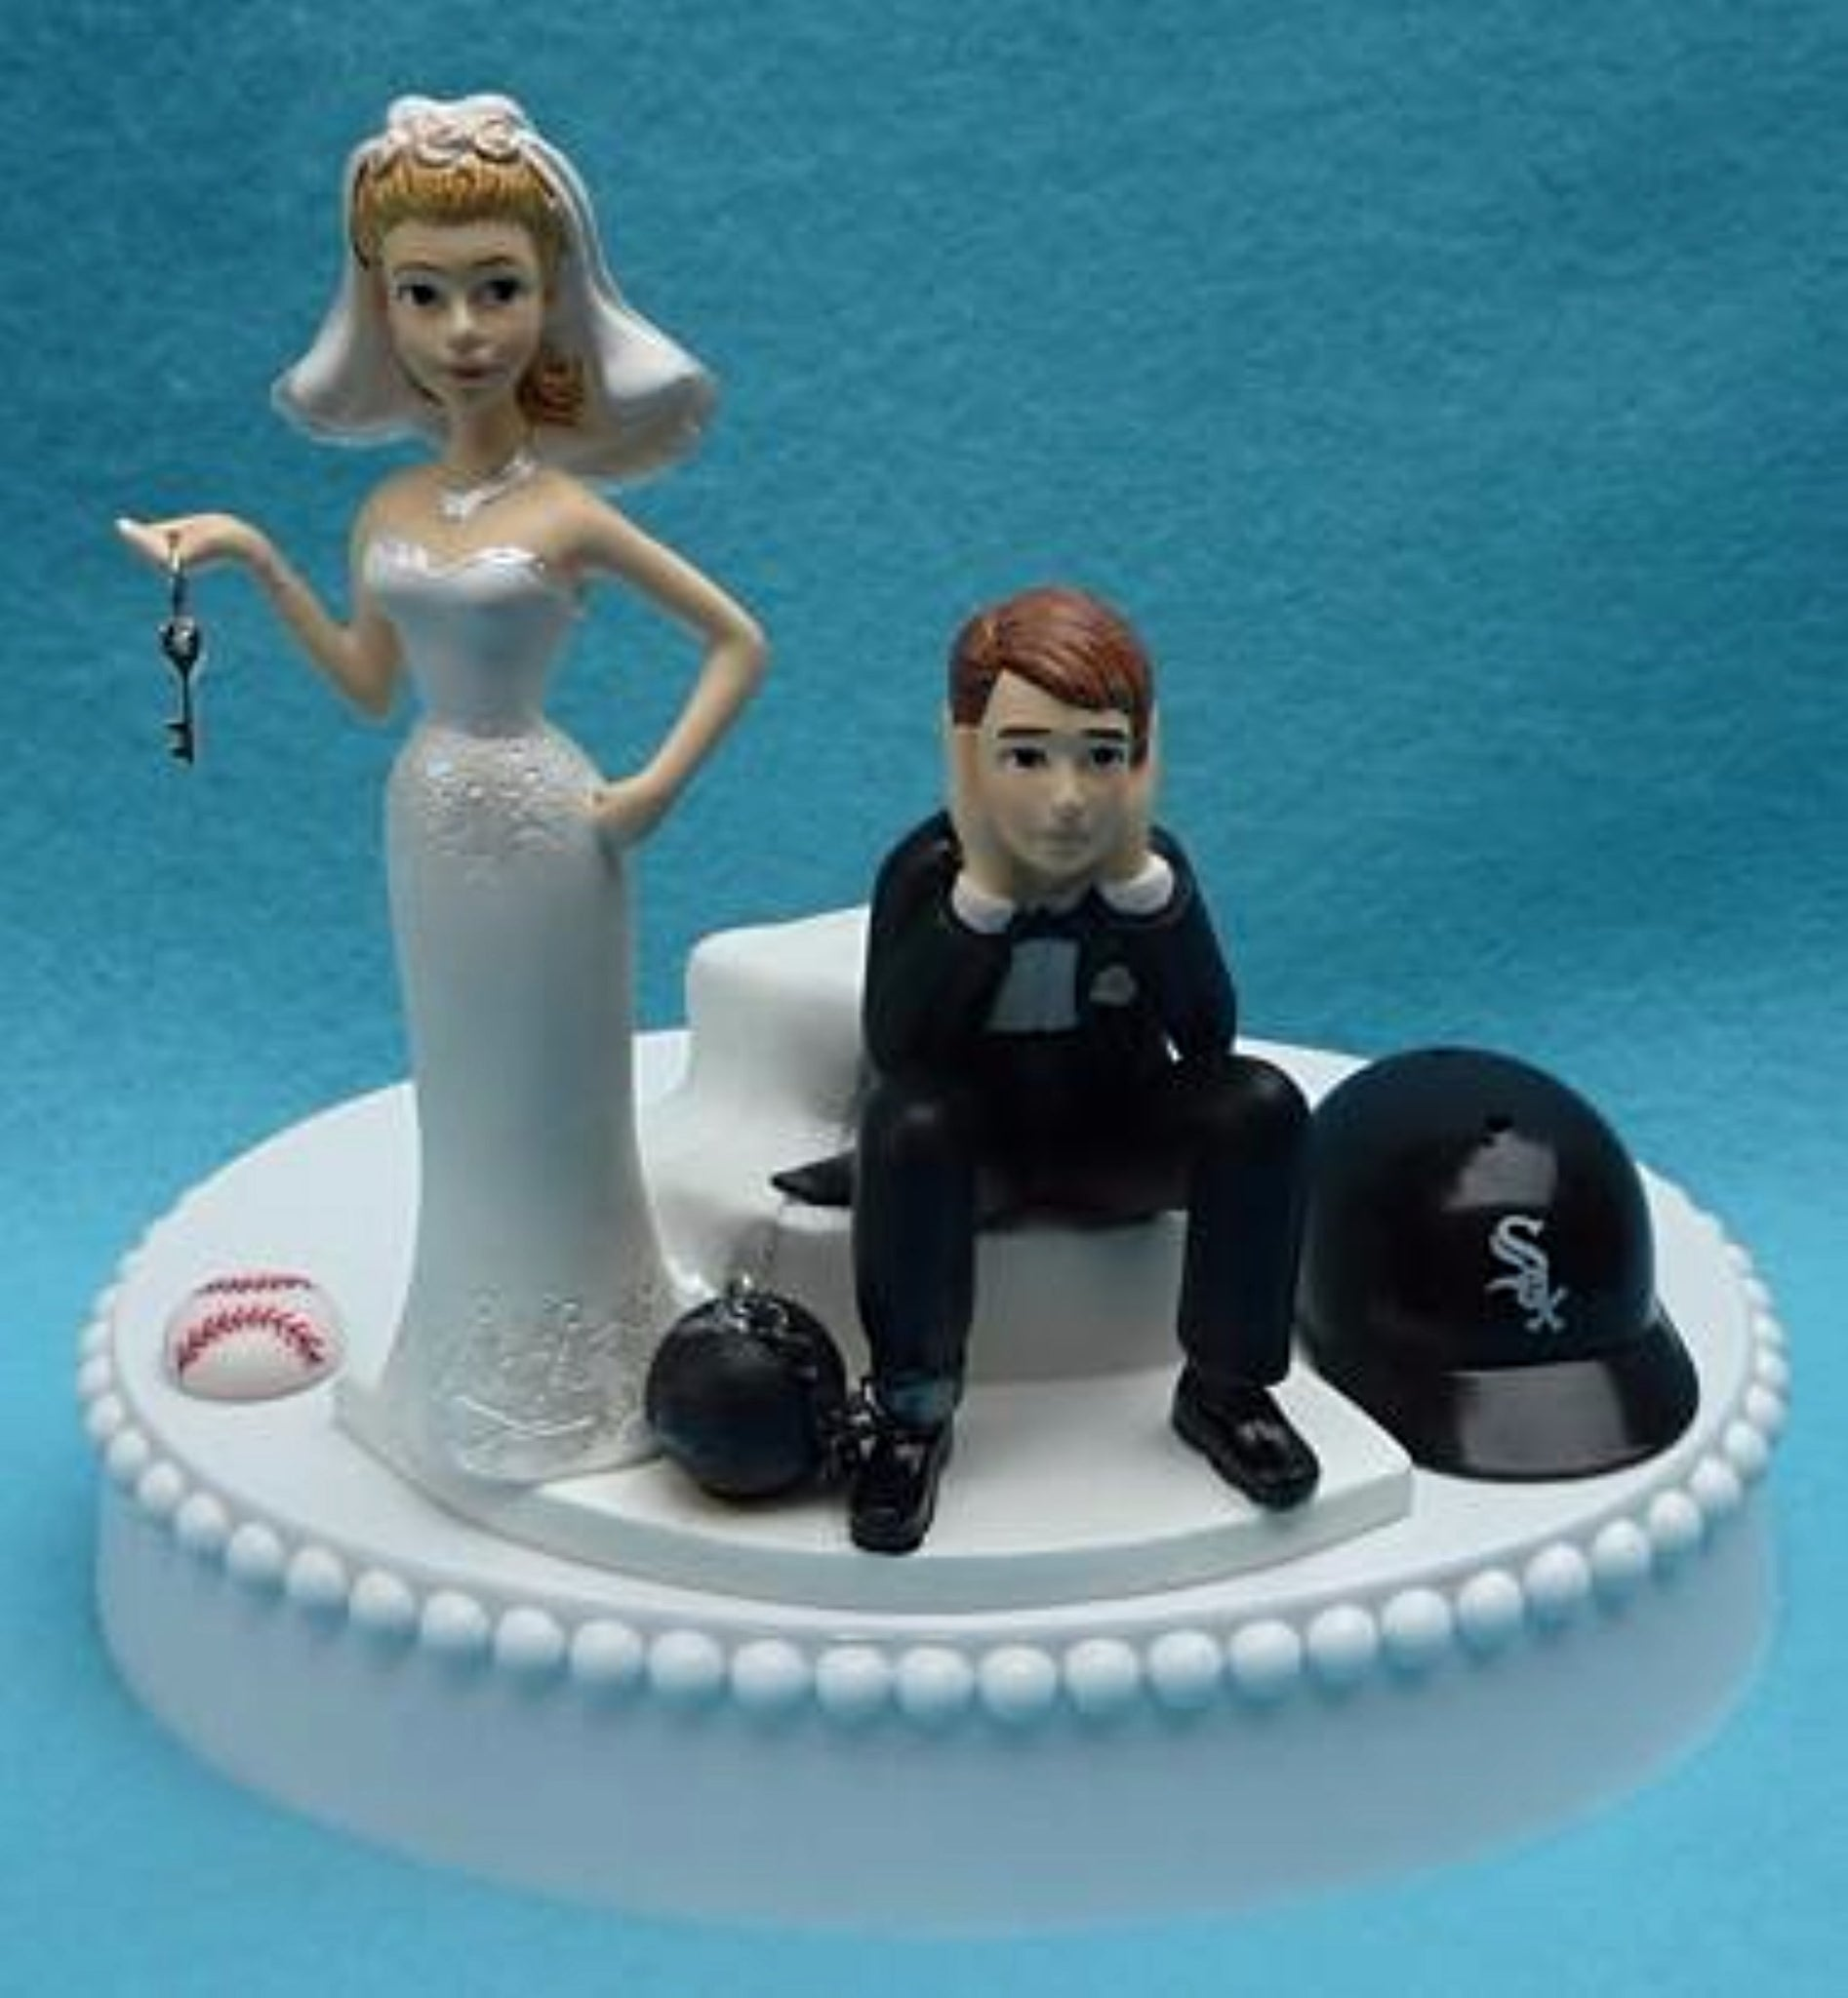 Chicago White Sox wedding cake topper sports fans fun bride dejected groom ball chain key humorous funny Chisox reception gift